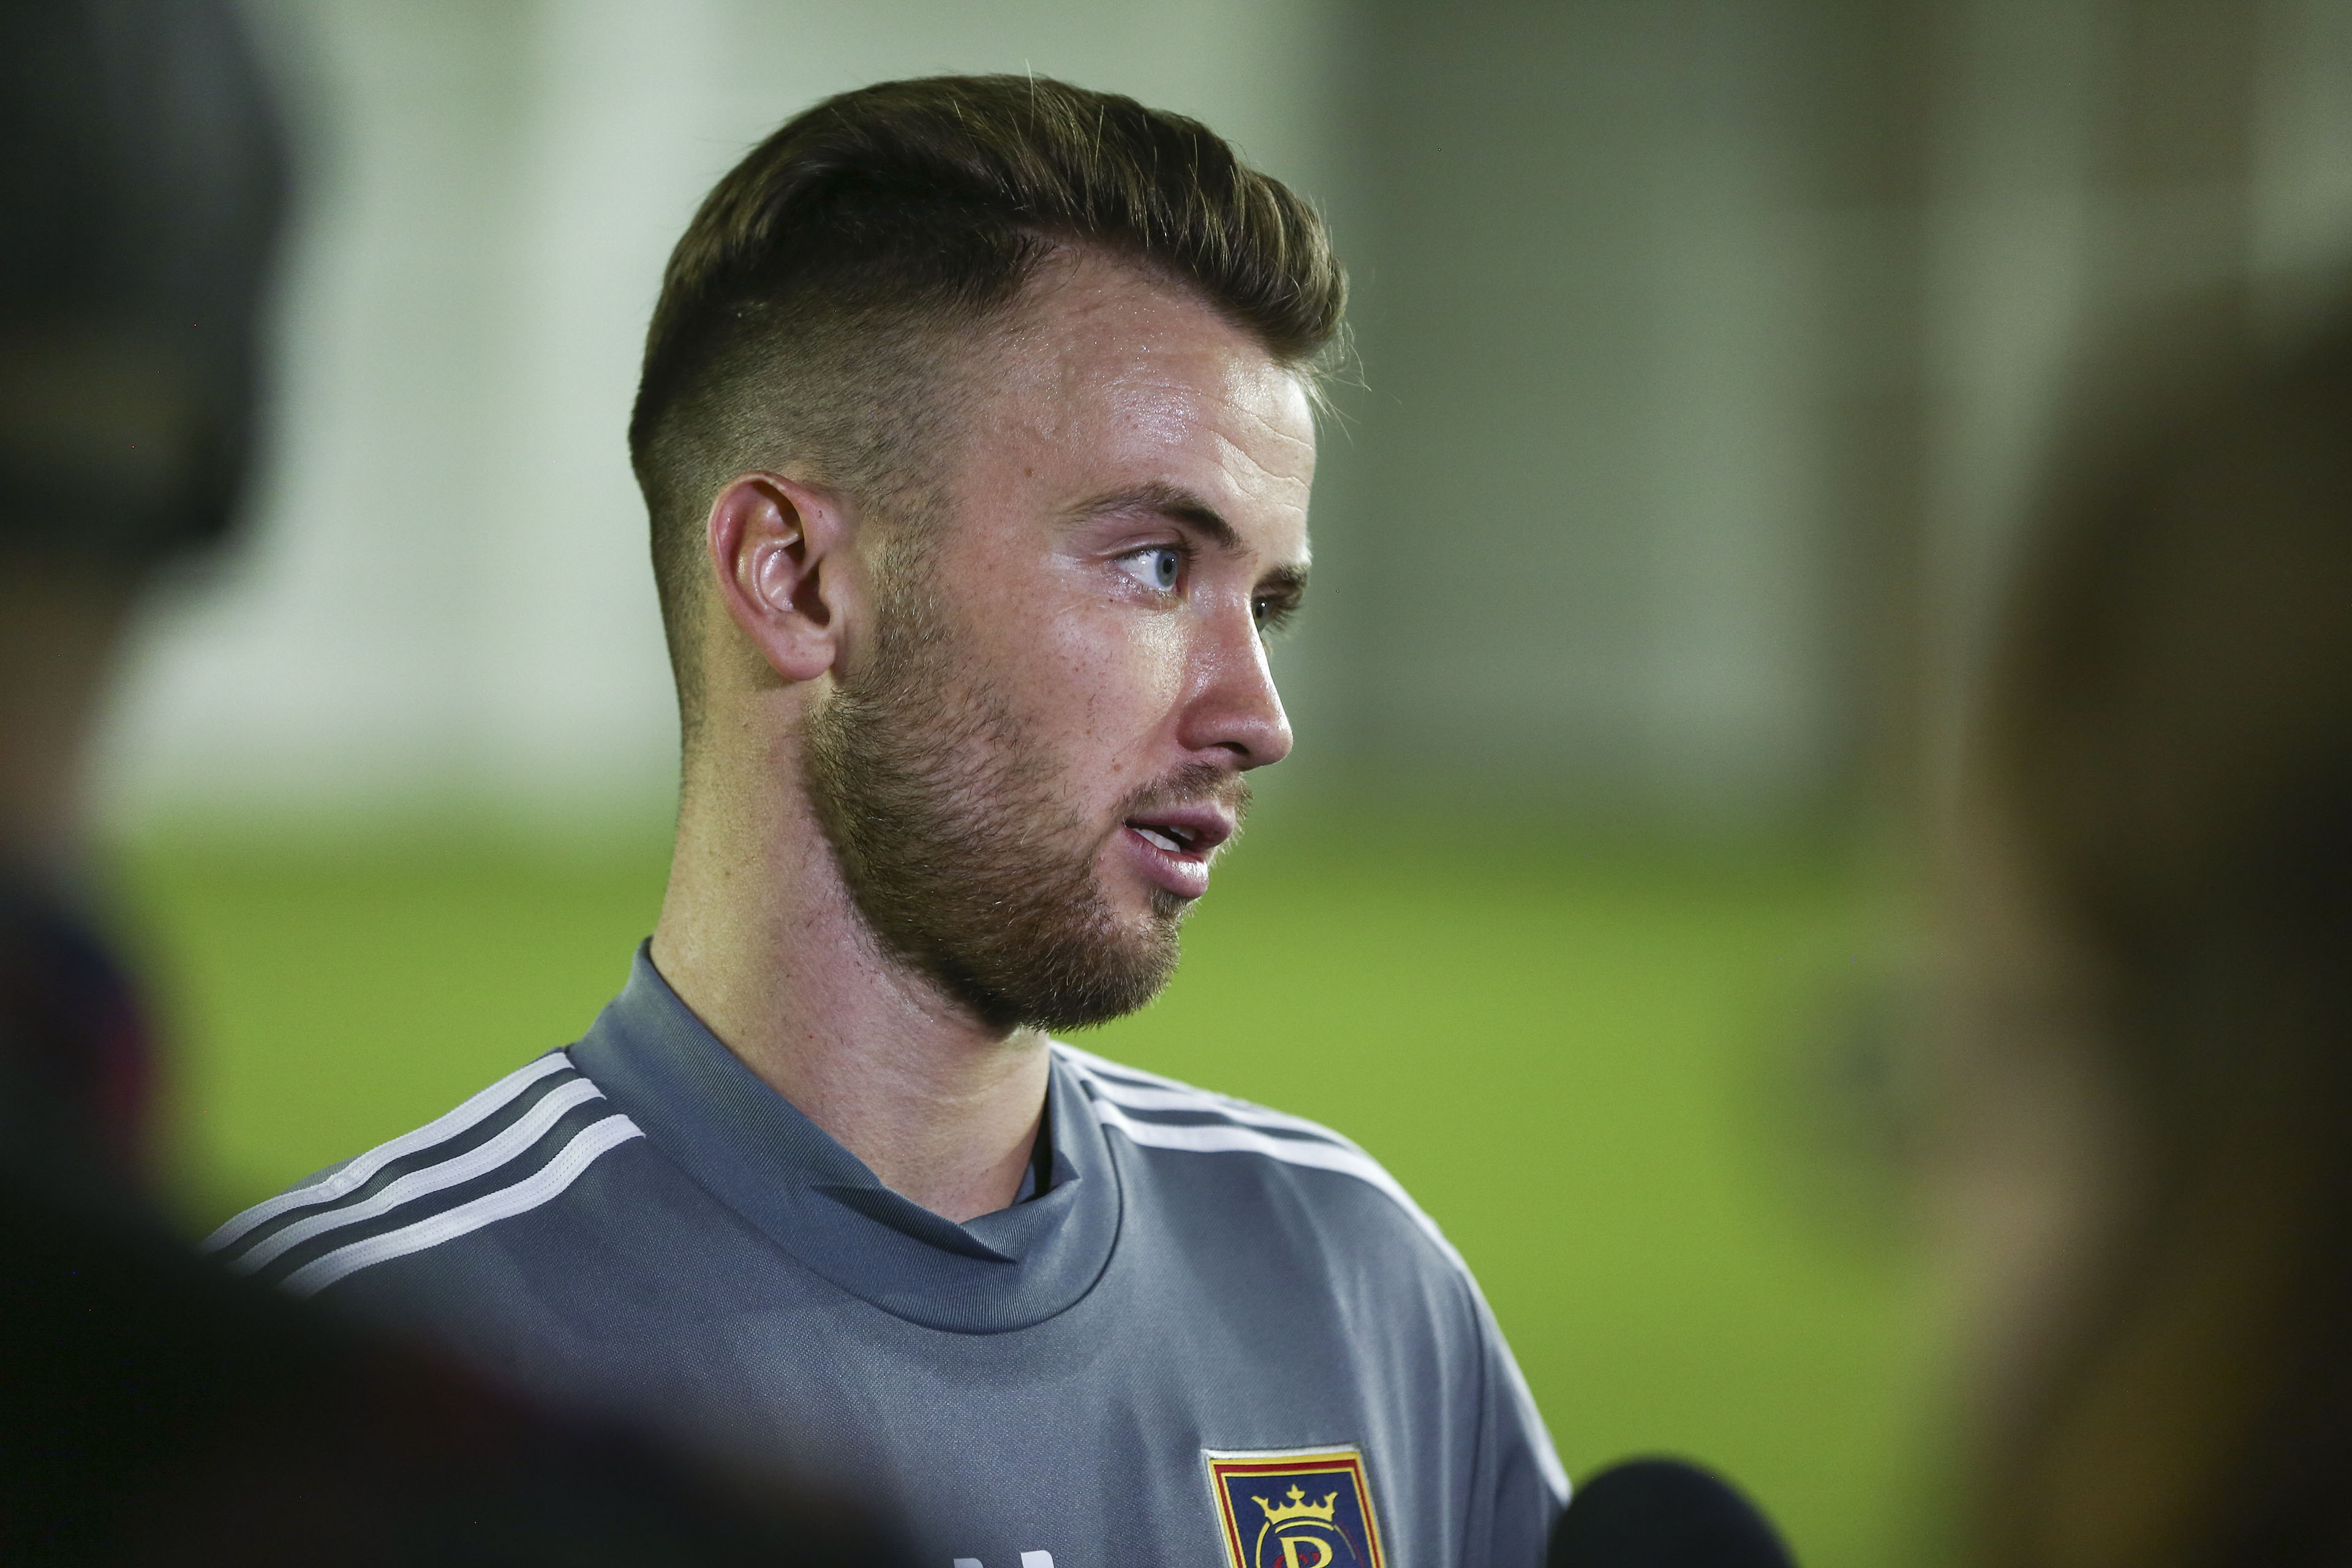 Real Salt Lake midfielder Albert Rusnák speaks with members of the media on Monday, Jan. 21, 2019. RSL has been in the MLS bubble for nearly a week now, at the Disney World Swan and Dolphin Resort, and the majority of players find it enjoyable.